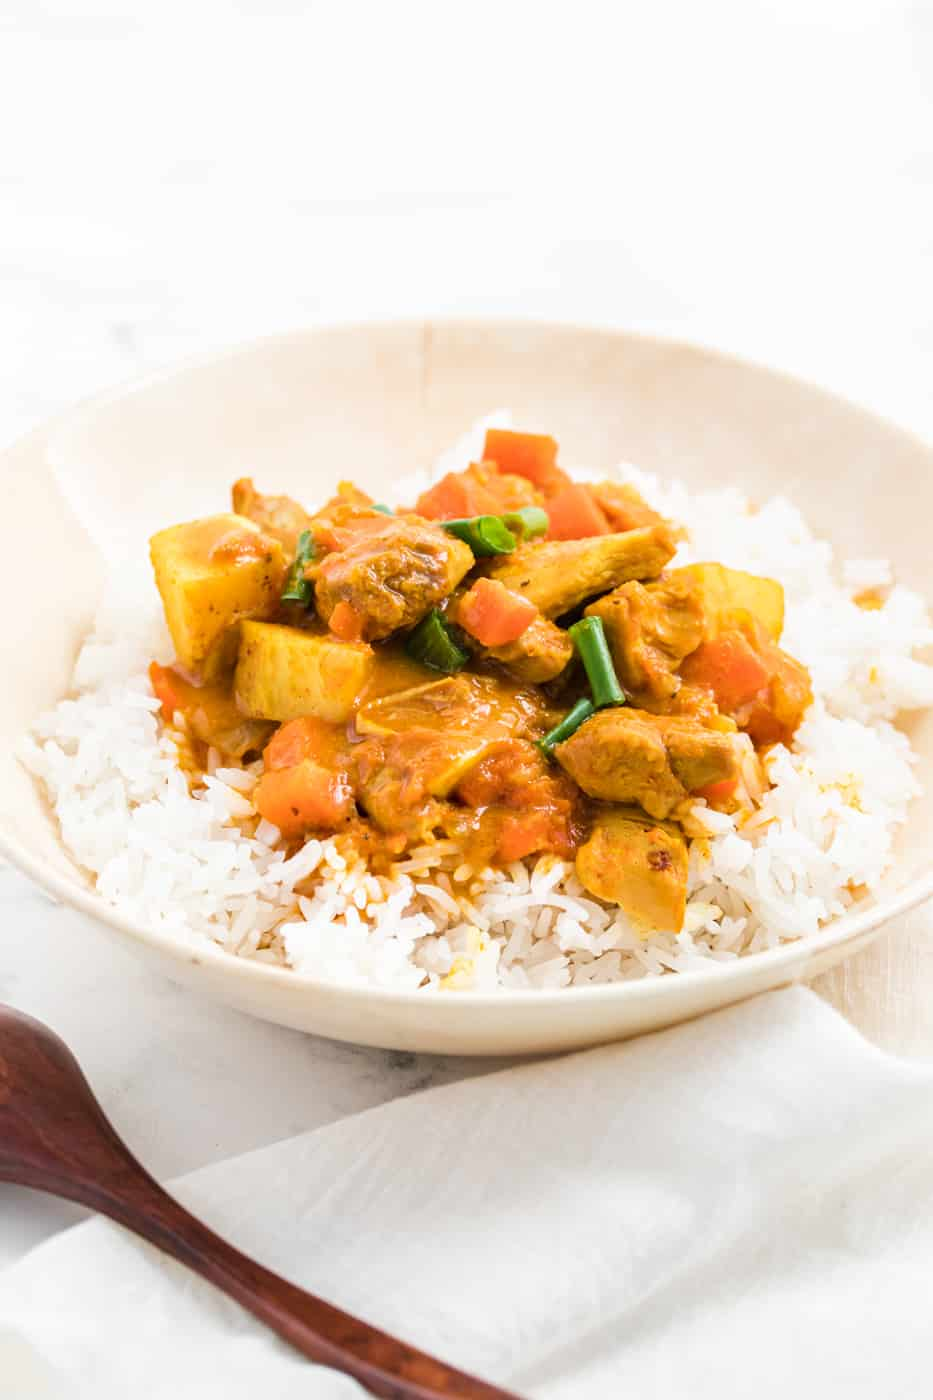 instant pot chicken curry with carrots and potatoes served in a bowl with steamed white rice